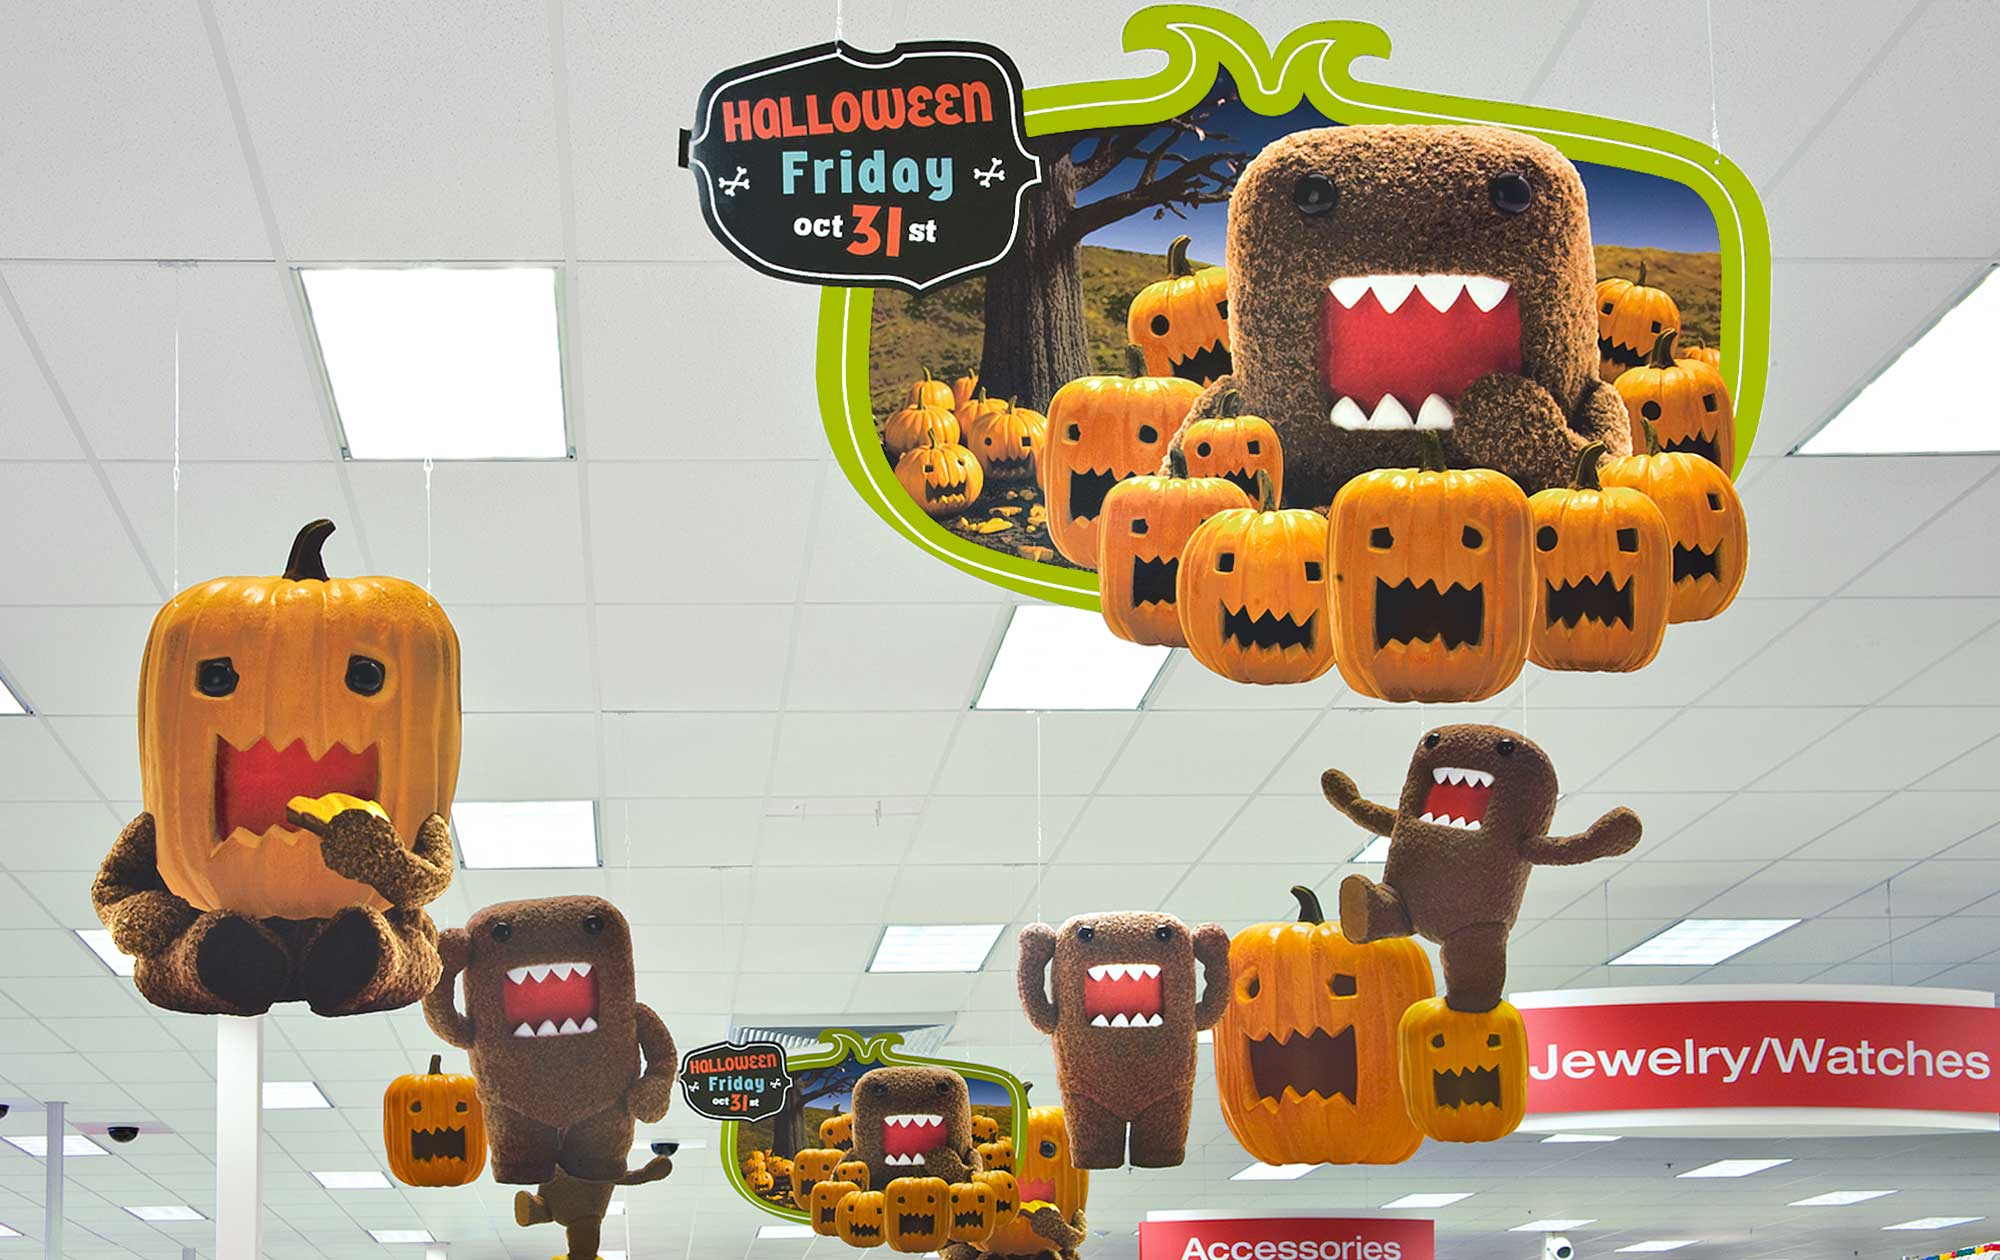 Domoween for Target / THIS IS FOLLY